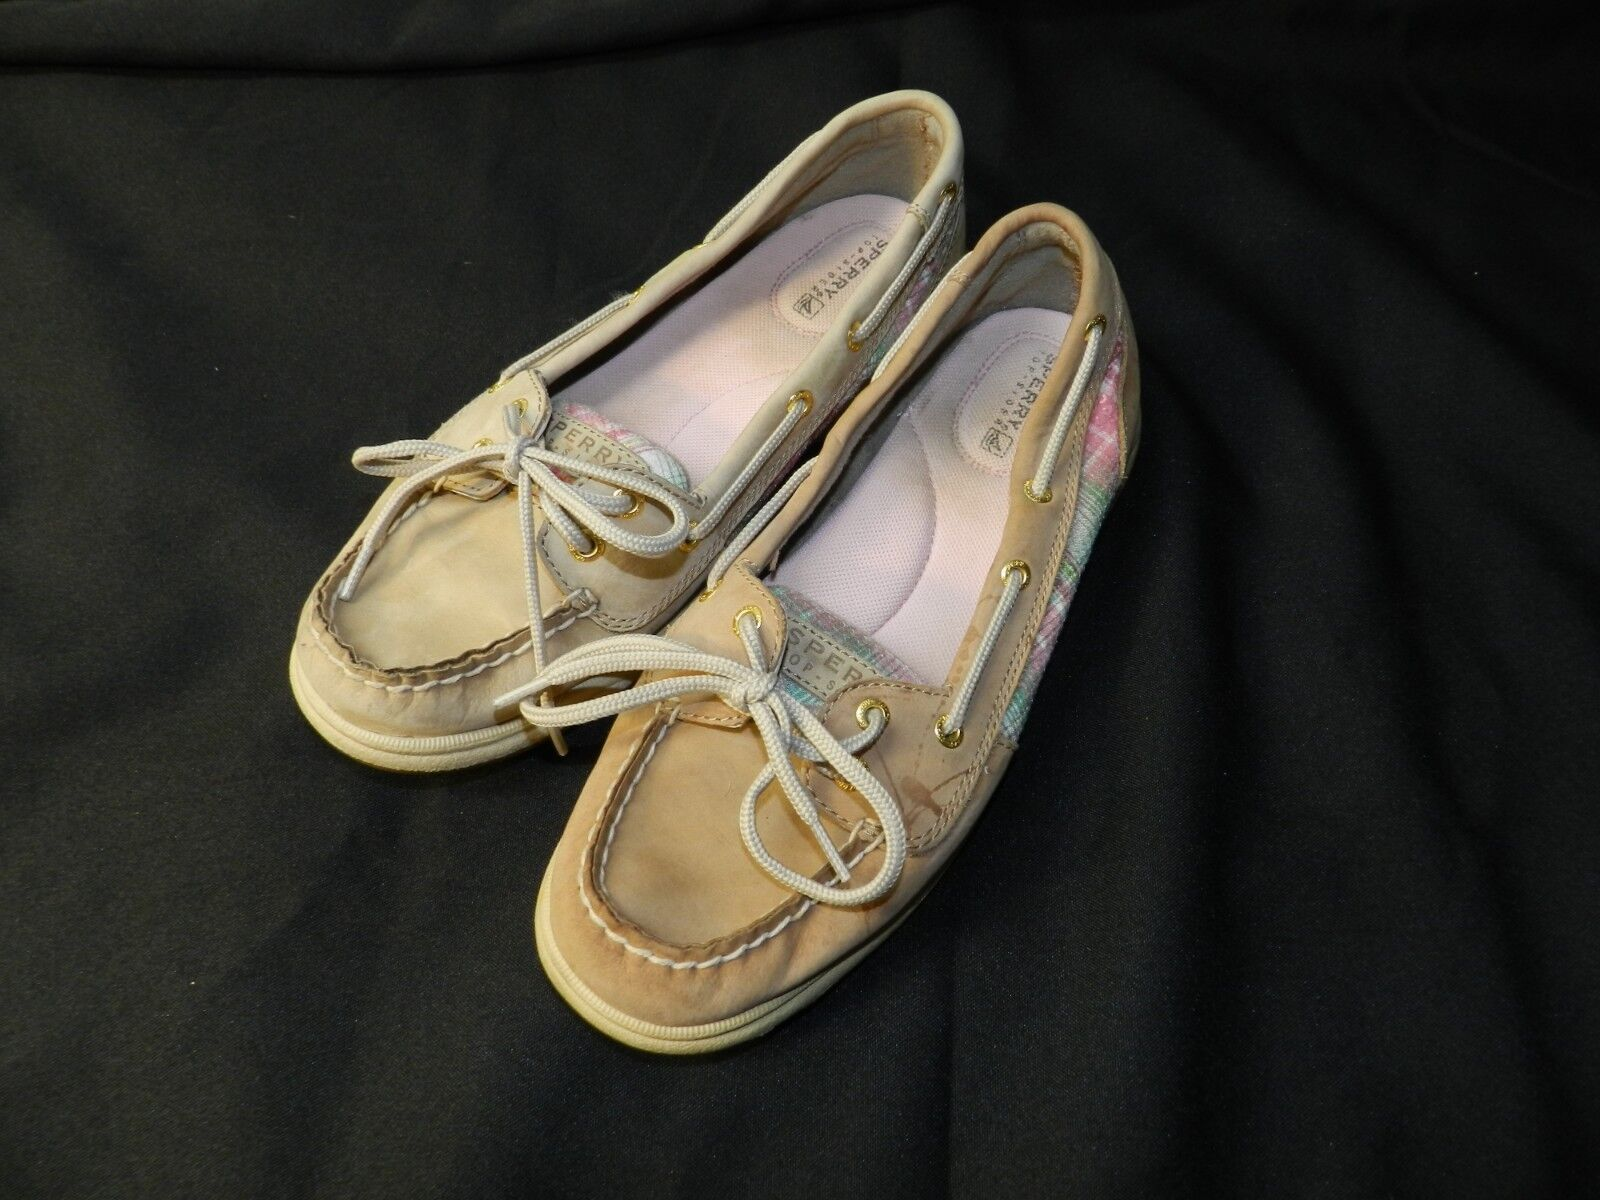 Sperry Top Sider Womens Tan Leather with Pink Trim Boat Shoes Size 8M